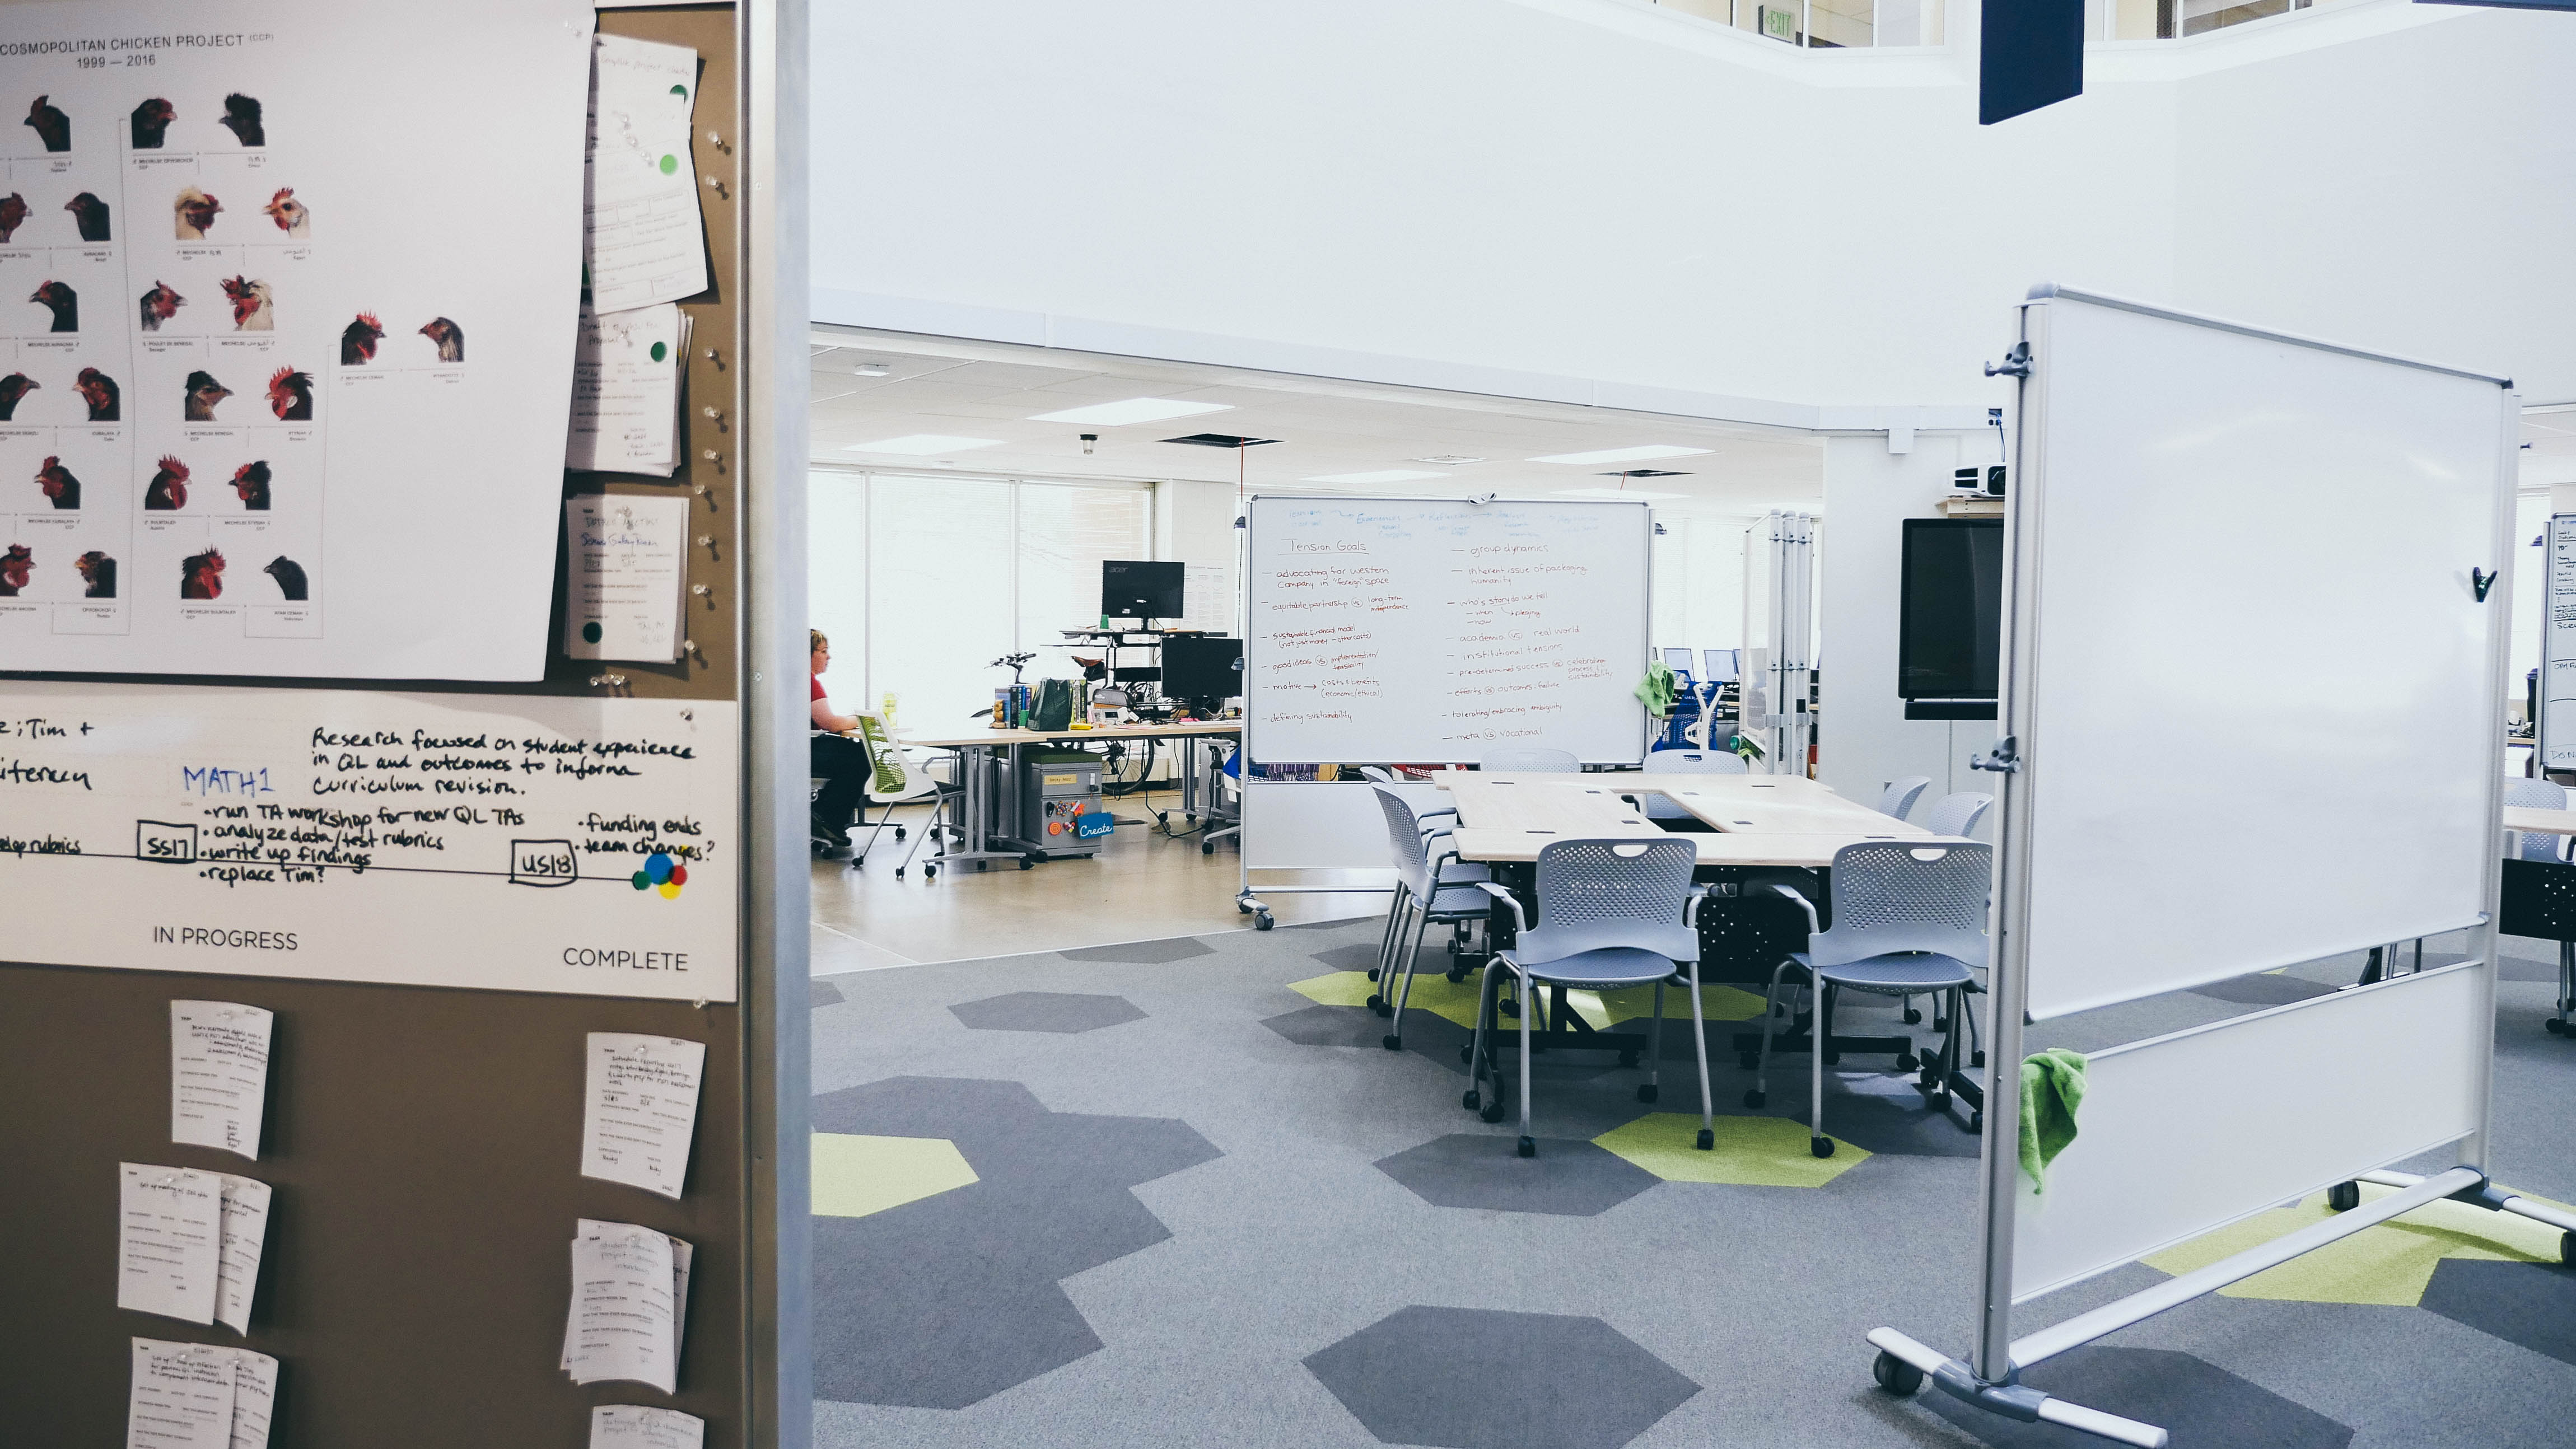 Whiteboards stand in a space with hexagon-tiled carpet, surrounding a table and chairs.